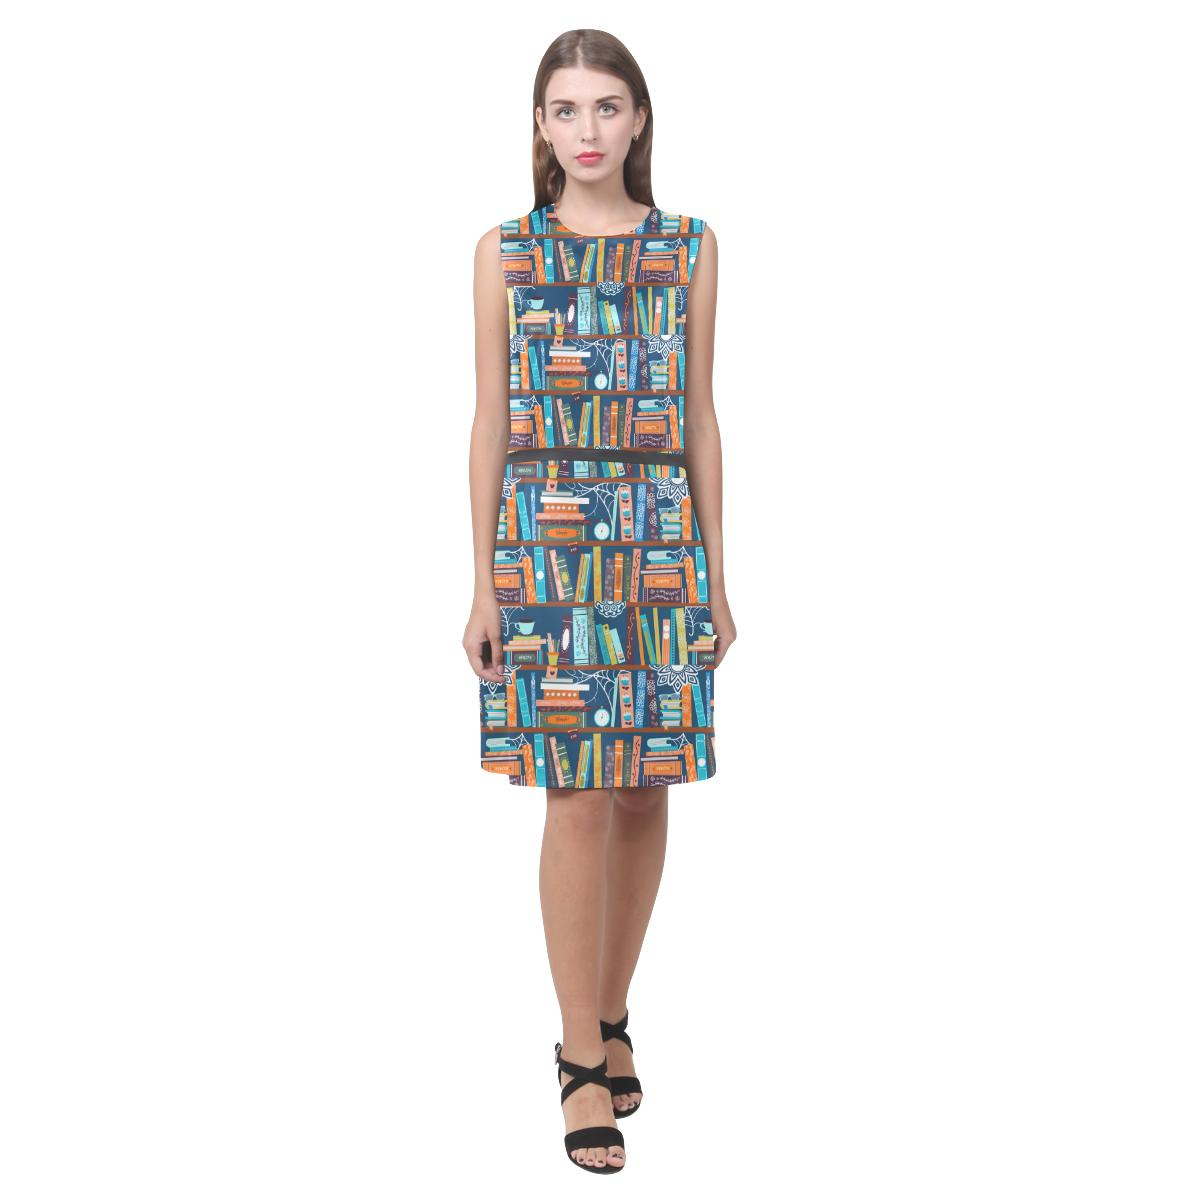 Book Cover Watercolor Dress : Book print sleeveless dress streetment